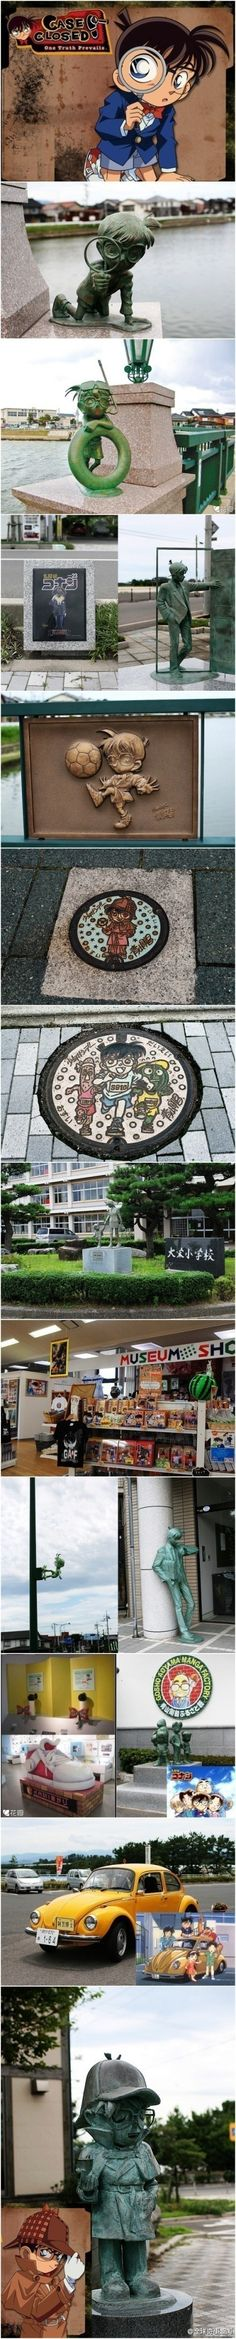 "Conan town, Tottori Prefecture in Japan, is a small town facing the Sea of ​​Japan, is the author Aoyama Gang Chang hometown. You can walk around the town and see the figure of Conan everywhere. Conan Avenue, Conan Bridge, even road signs, signs, bronze reliefs, covers are all with Conan as the theme. It is the world's ""Conan fans"" pilgrimage!"